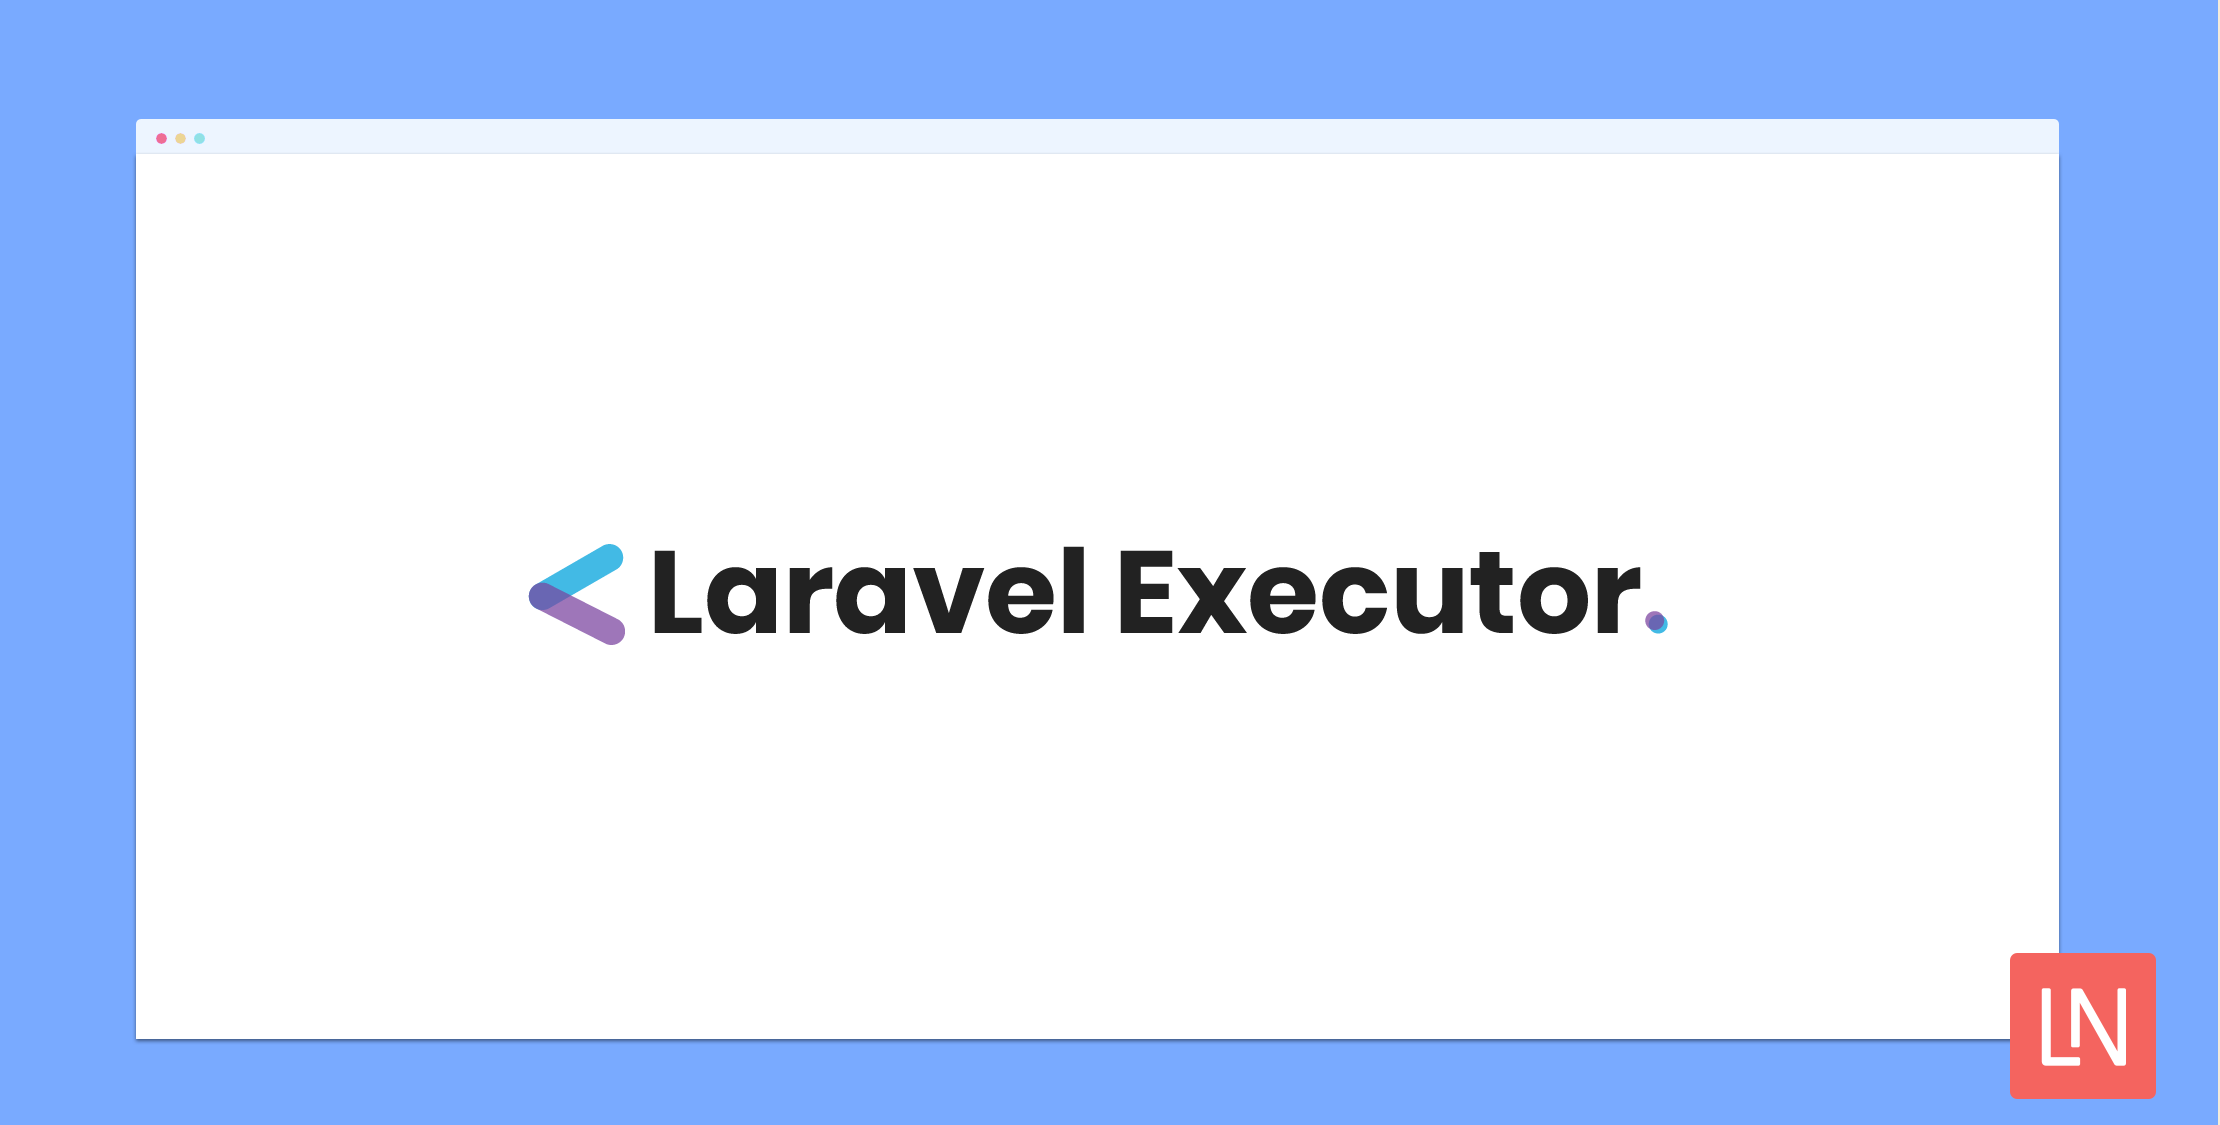 laravel-executor-featured.png